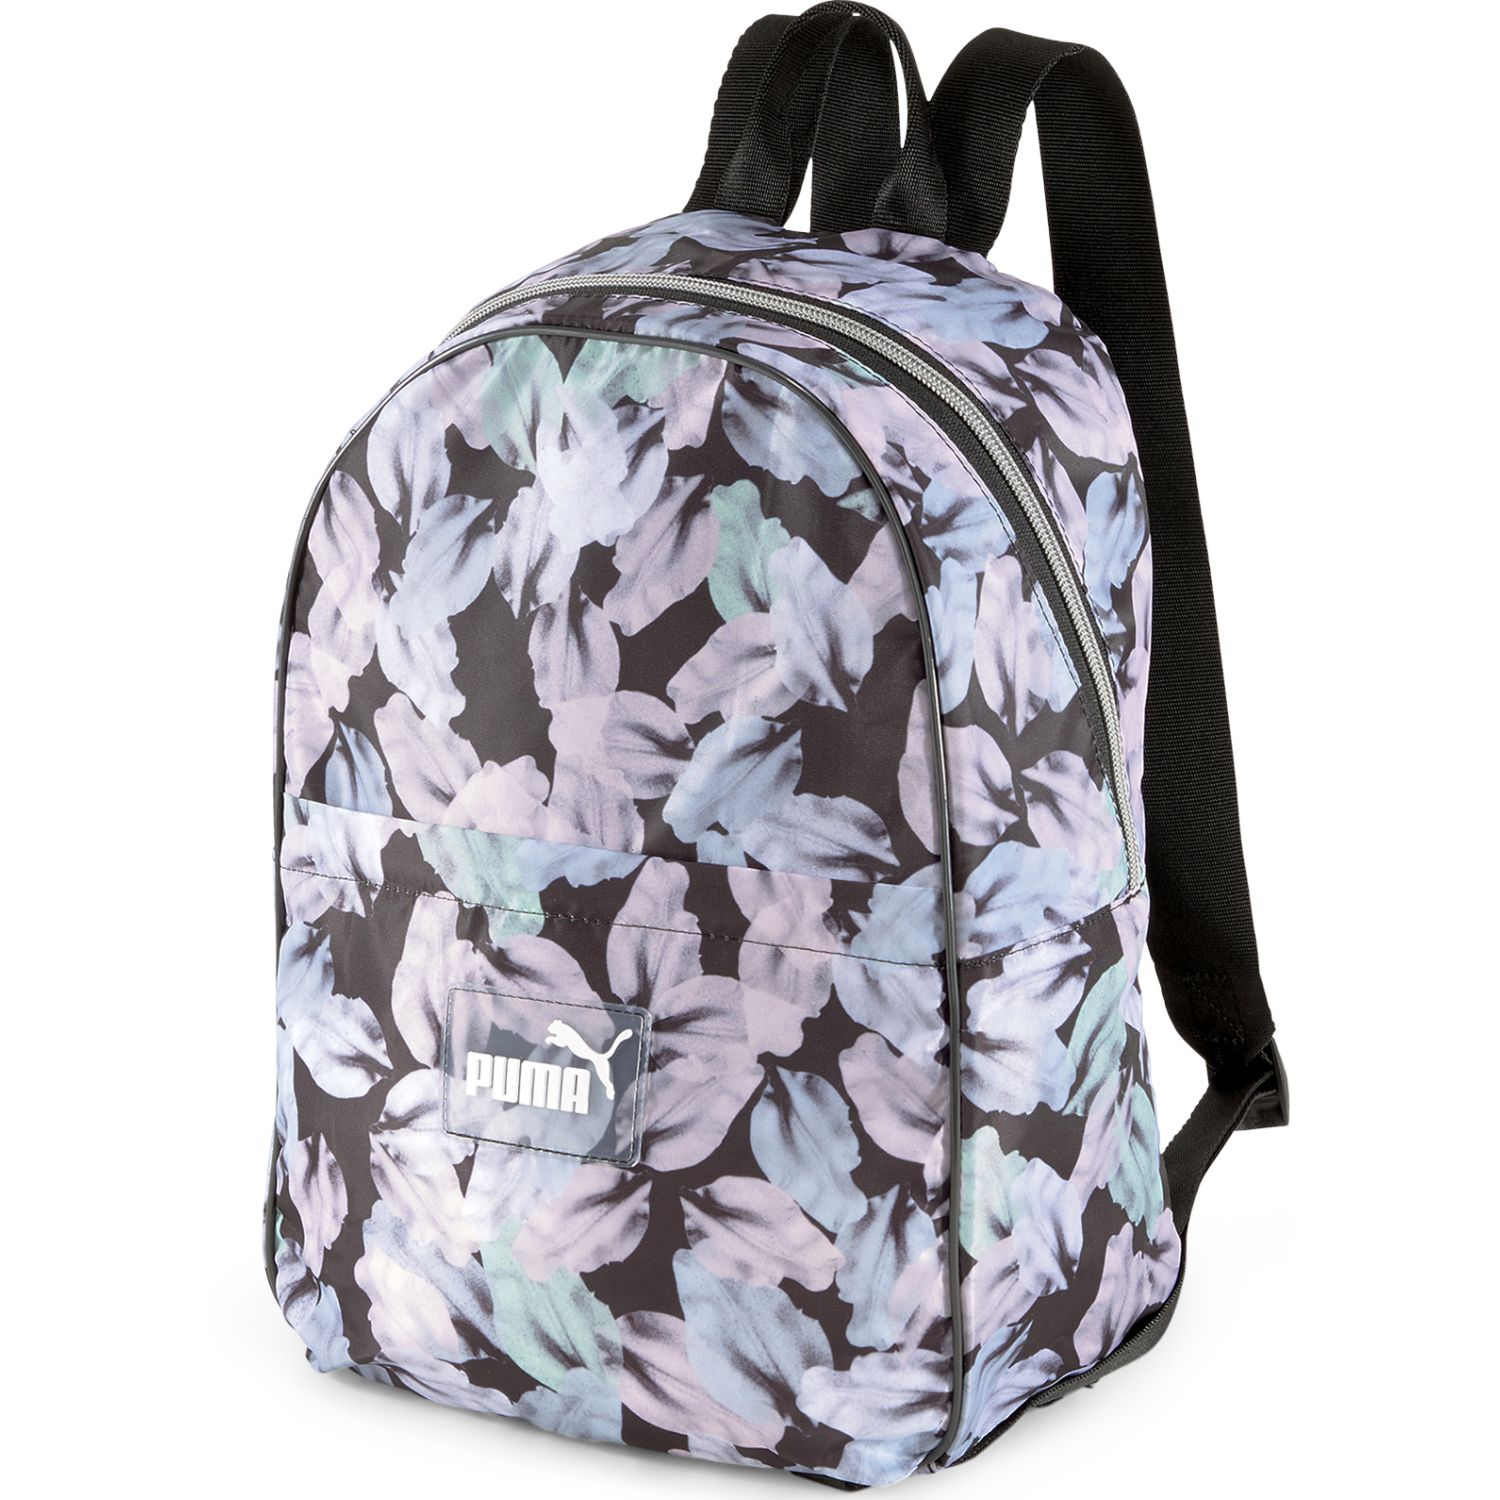 Puma WMN Core Seasonal Backpack Camuflado Mochilas Multipropósitos